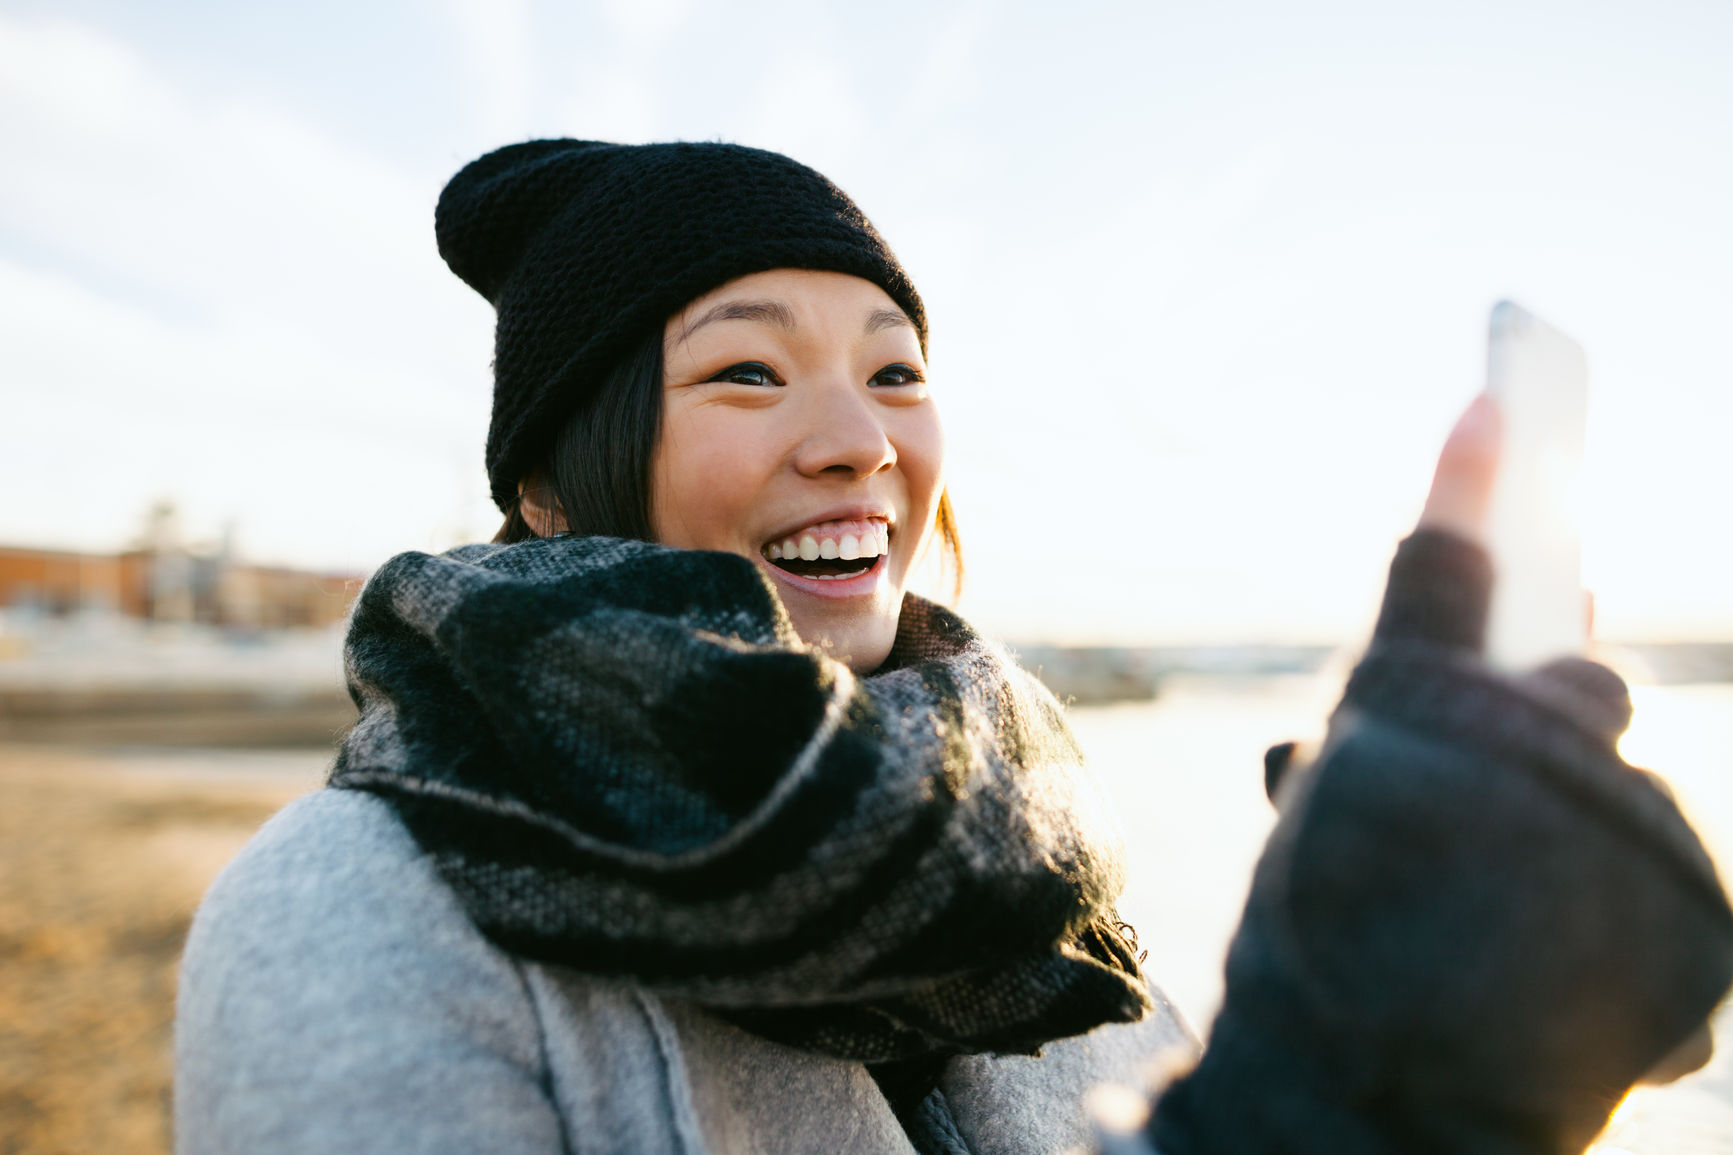 young woman looking at phone smiling outdoors